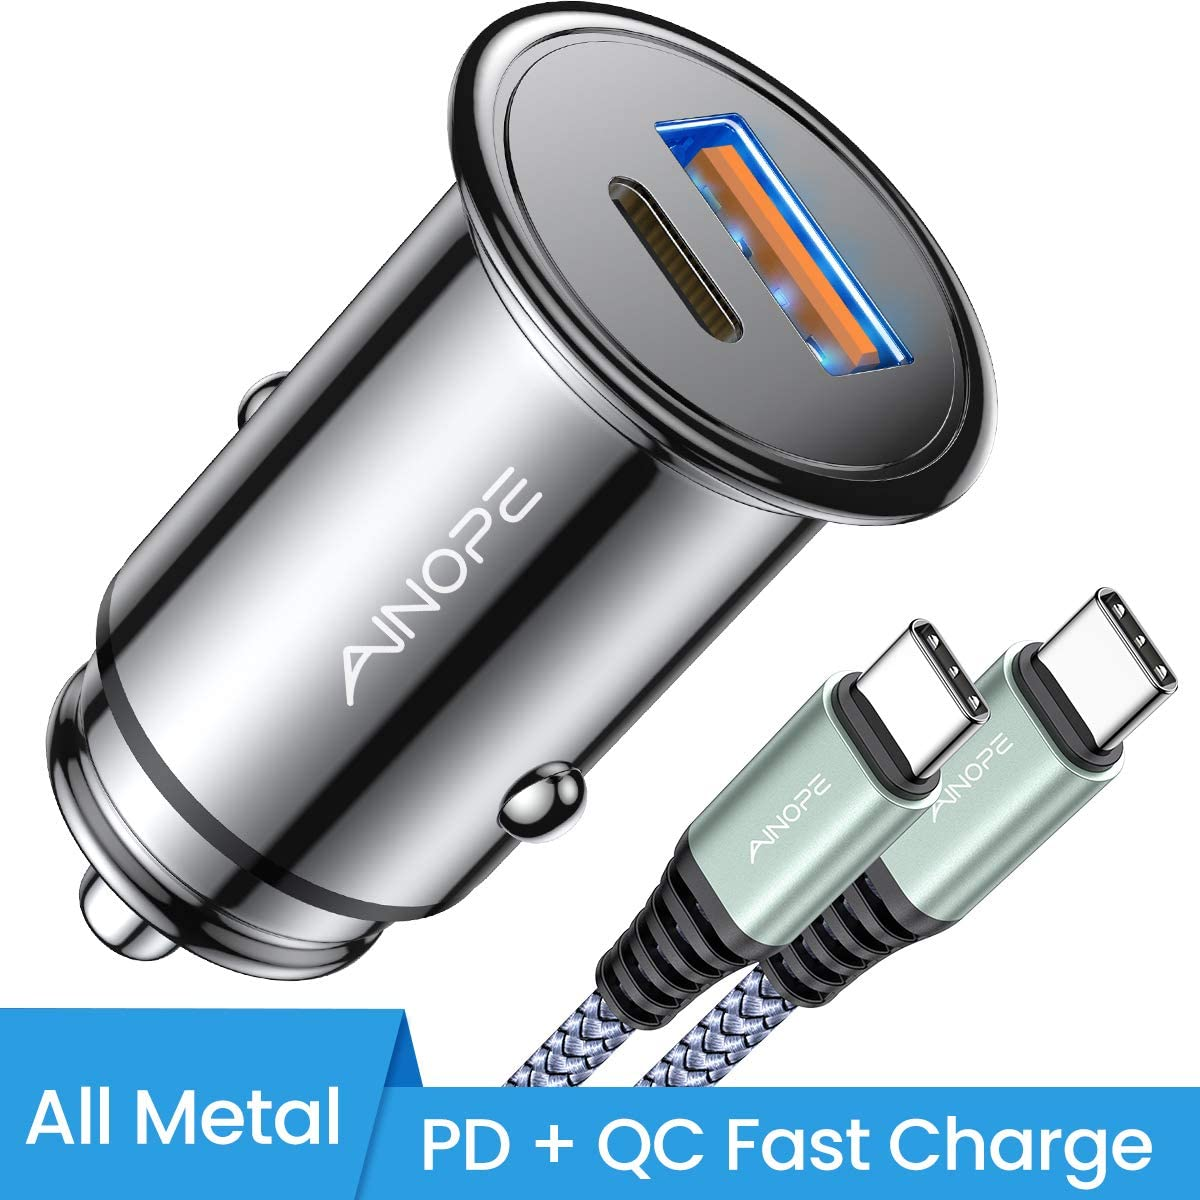 USB C Car Charger Super Mini AINOPE All Metal 36W Fast USB Car Charger PD&QC 3.0 Dual Port Car Adapter Fit Compatible with iPhone 11/11 Pro/11 Pro Max/XS, Samsung Note 10/S10, Google Pixel 3/2/XL